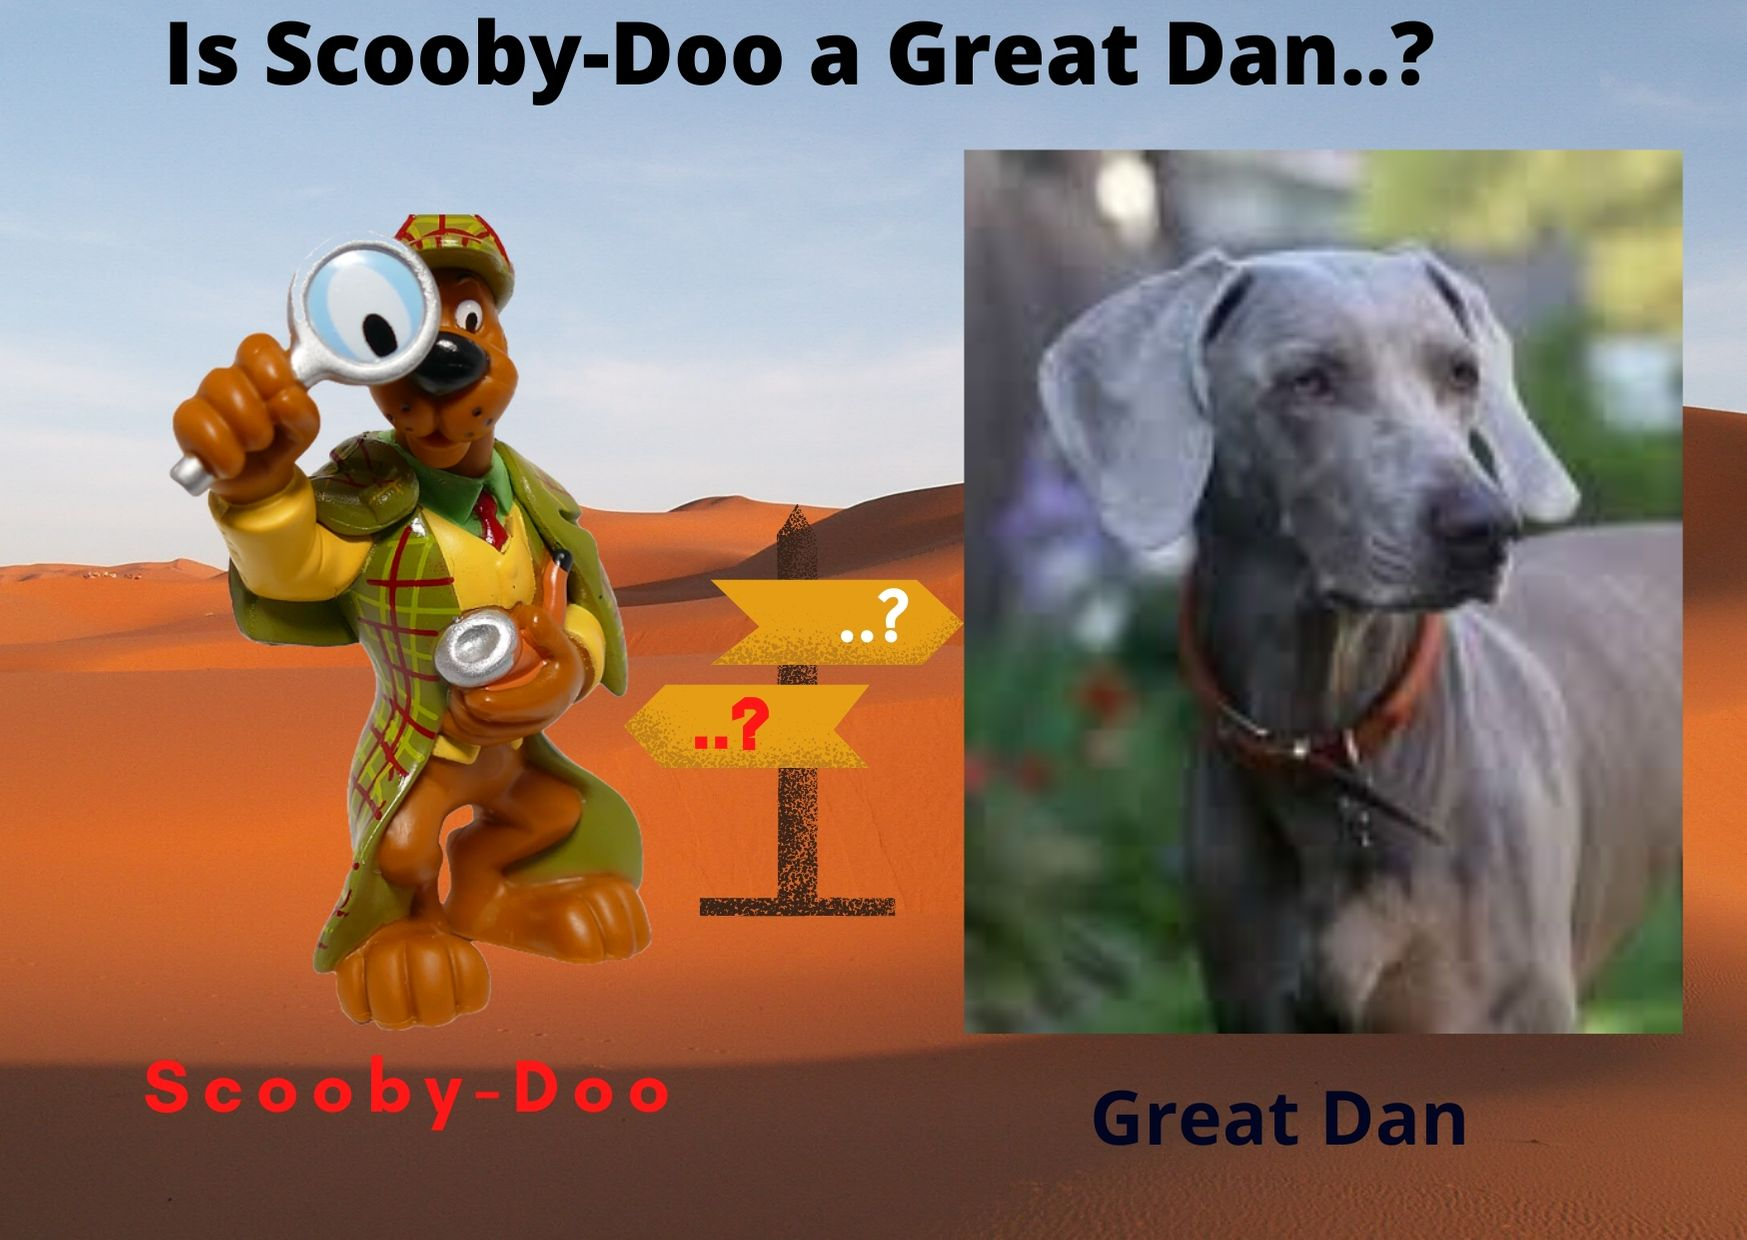 What kind of Dog is Scooby-Doo